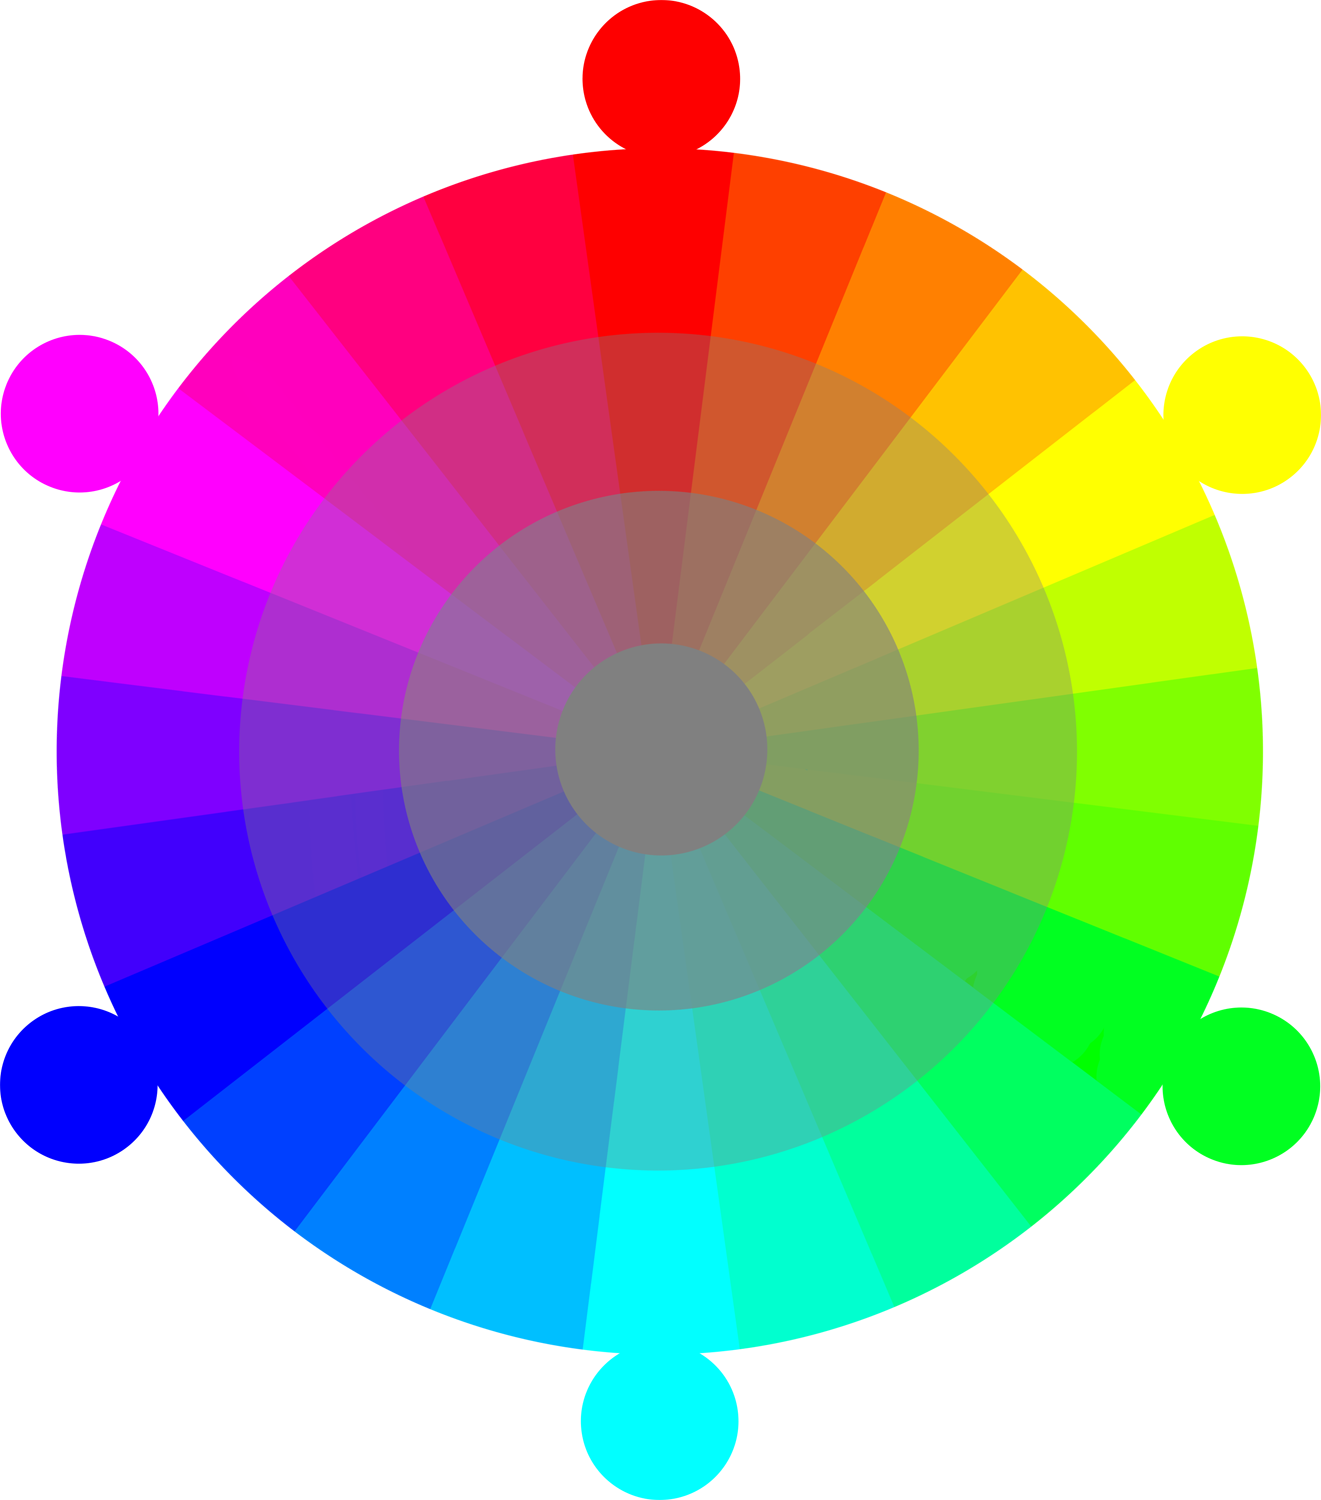 Blendoku Developers Novel Approach To Adding Colorblind Support To A Game About Colors Color Theory Art Color Wheel Art Basics